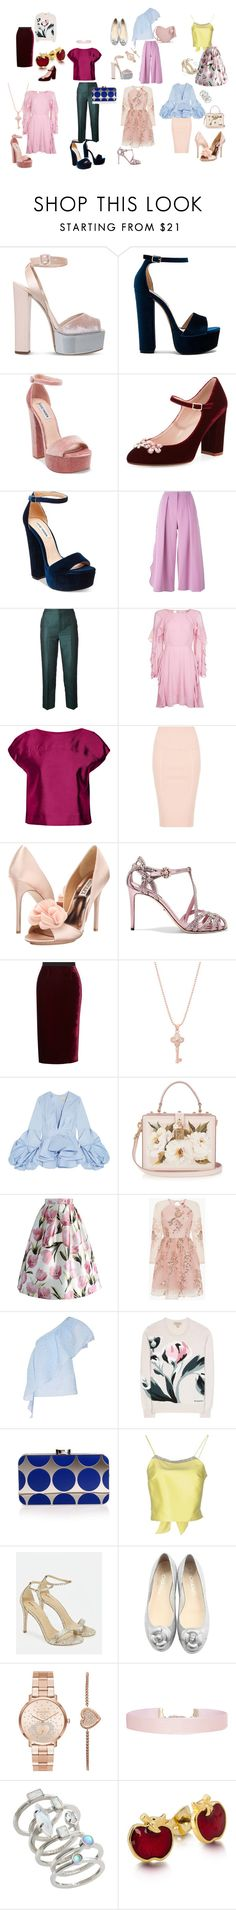 """Наивный Романтизм Kate"" by explorer-14250647065 on Polyvore featuring мода, Giuseppe Zanotti, Steve Madden, Kate Spade, Roksanda, Le Ciel Bleu, Topshop, Raoul, Kendall + Kylie и Badgley Mischka"